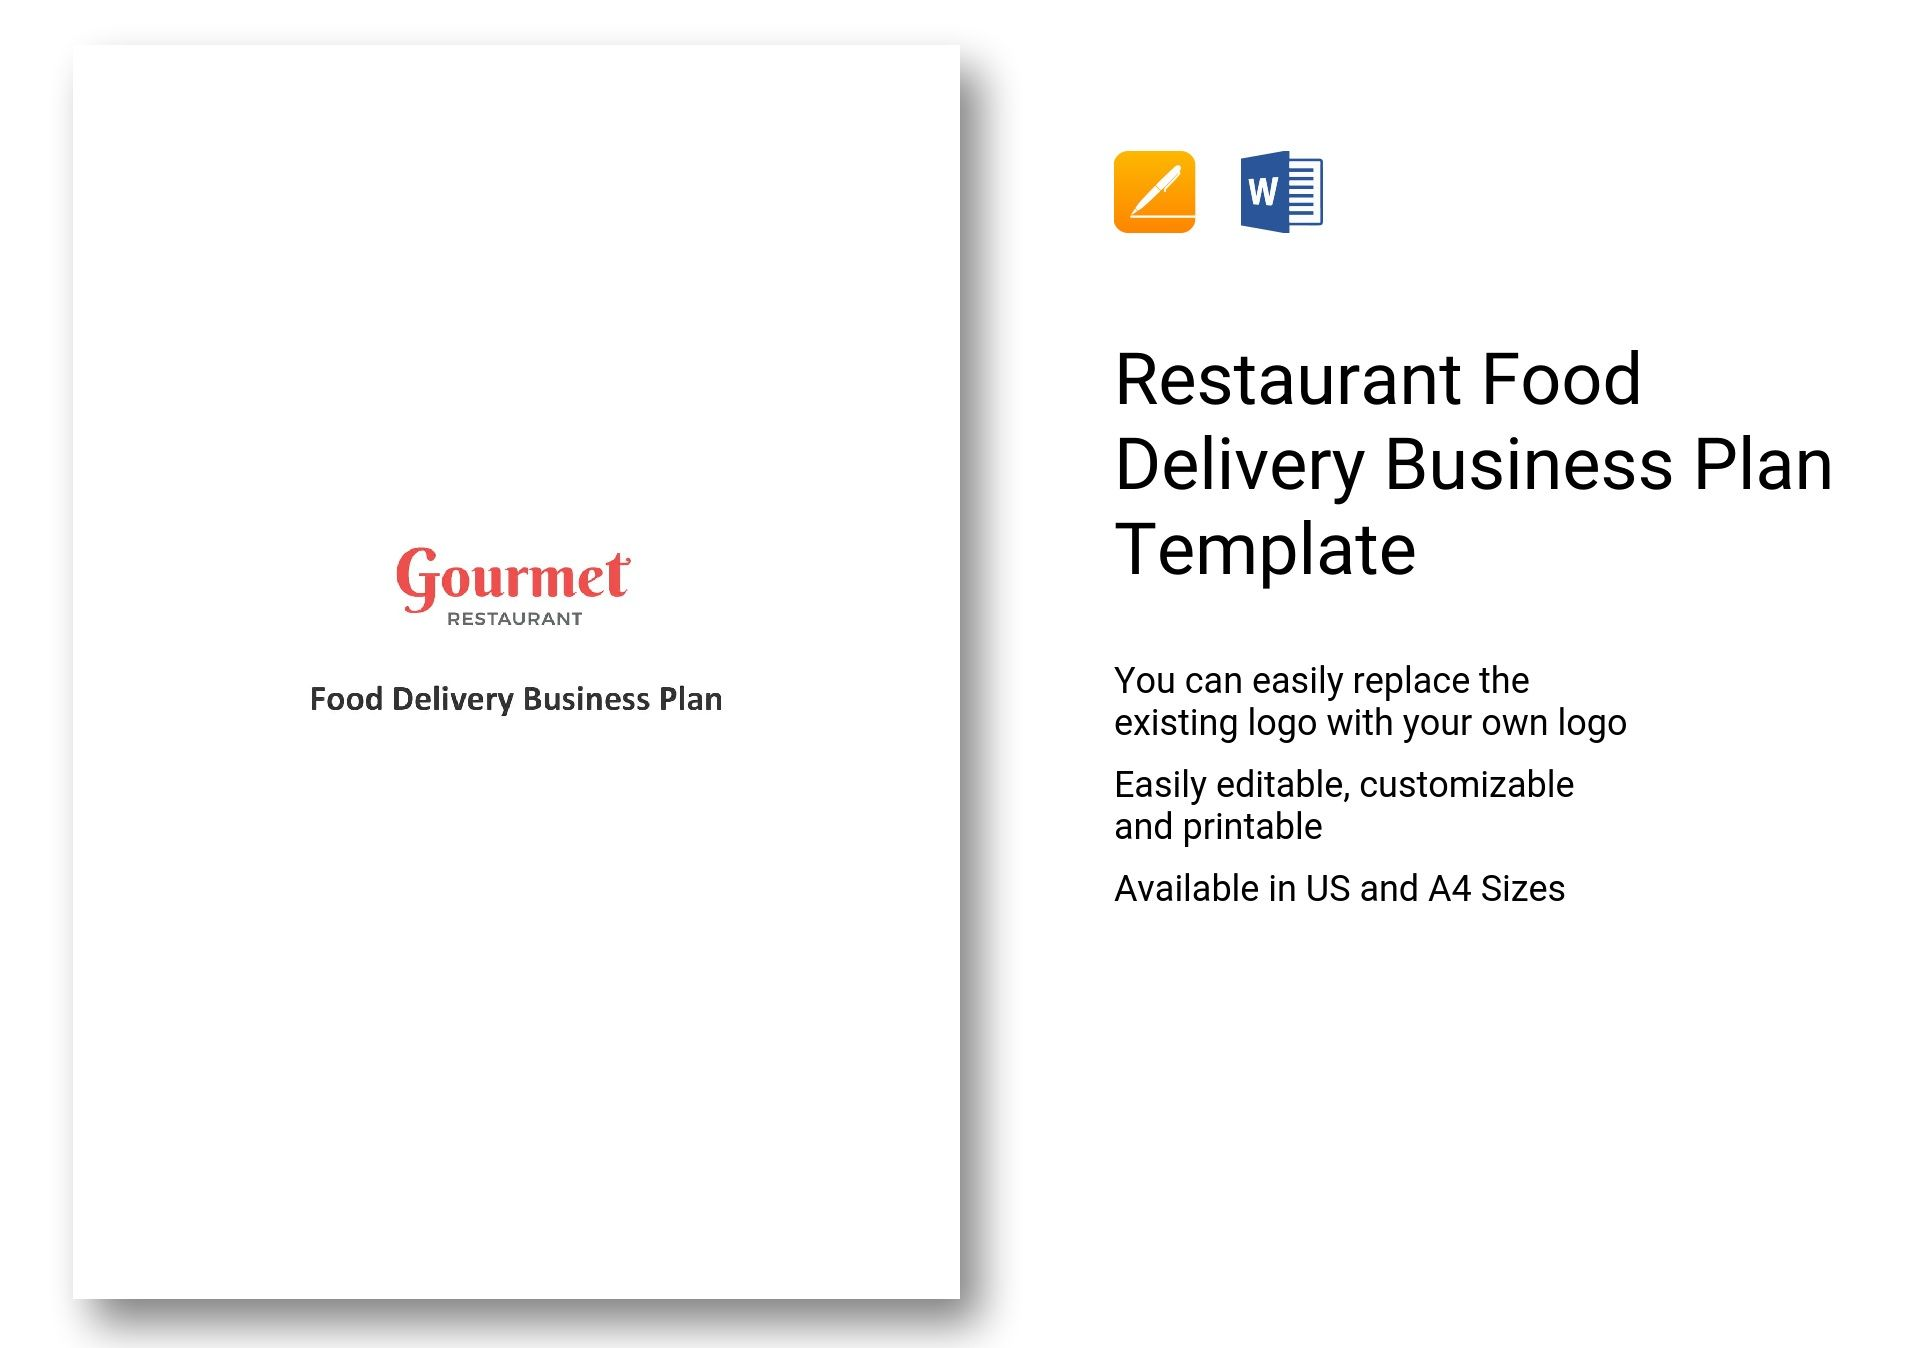 Restaurant Food Delivery Business Plan Template In Word